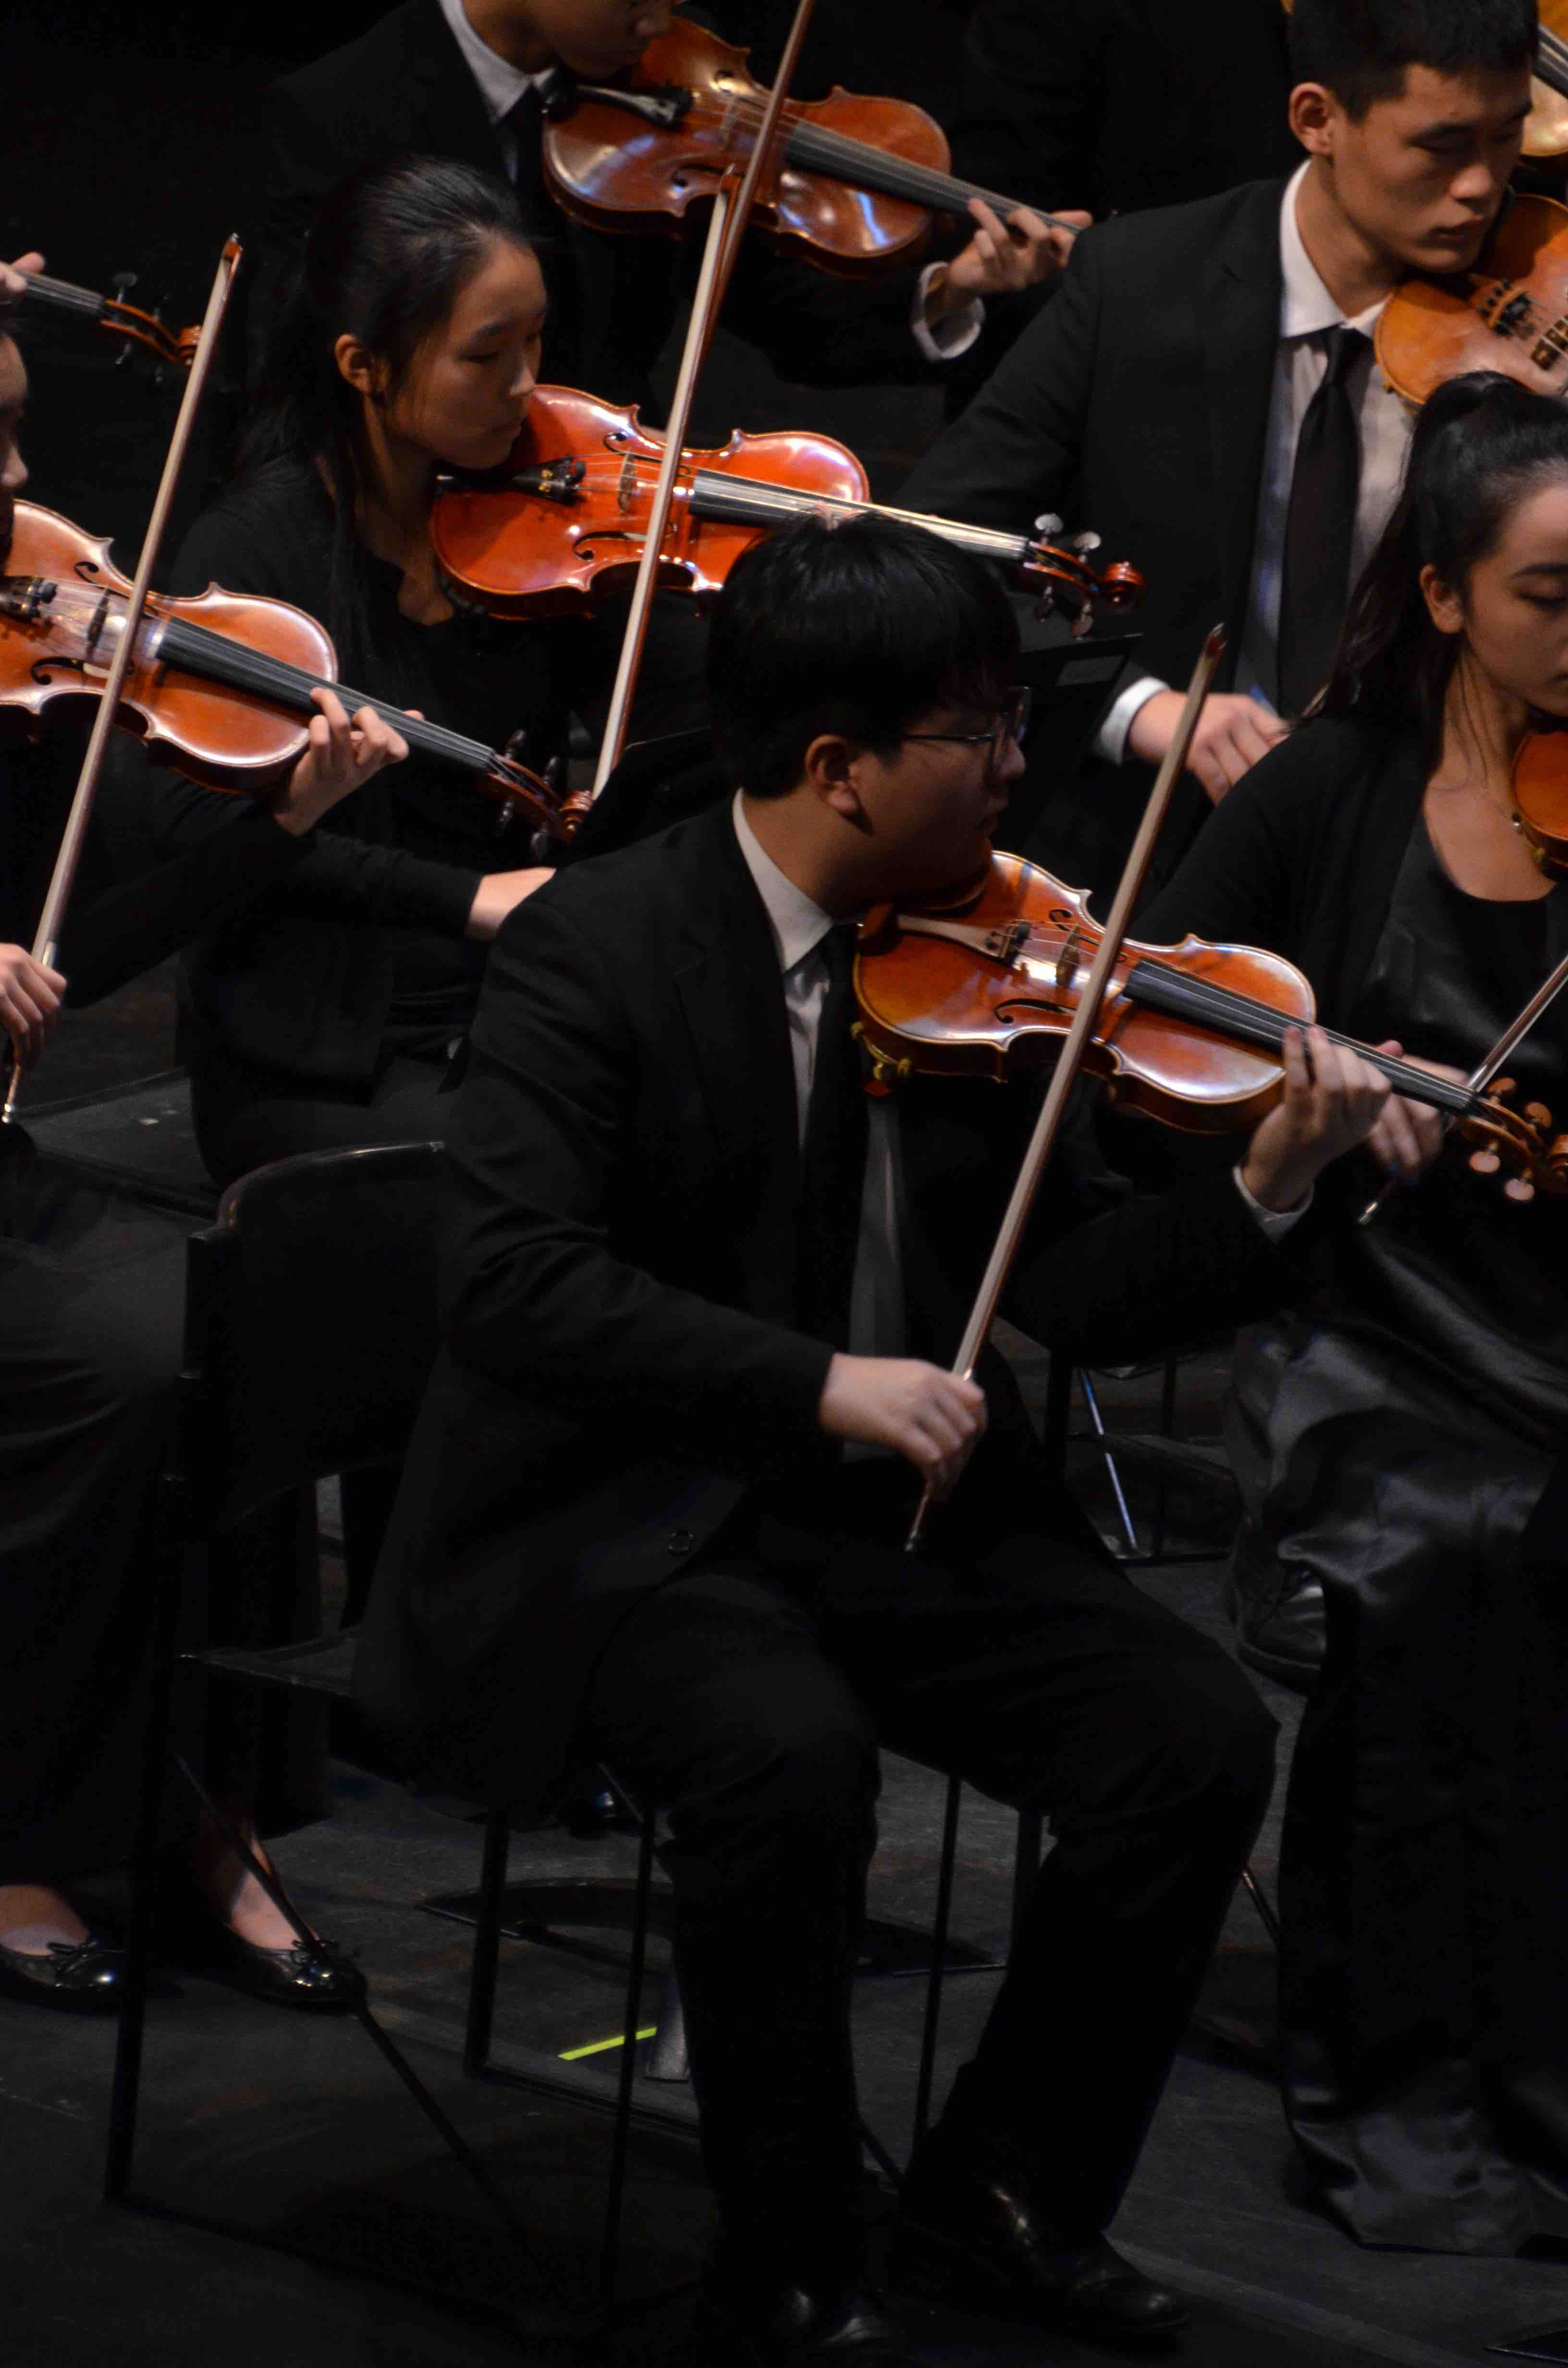 Cuebeom+Choi+%2812%29+plays+violin+as+a+part+of+the+upper+school+Orchestra.+The+Winter+Concert+took+place+on+January+13+at+the+Mexican+Heritage+Theater.